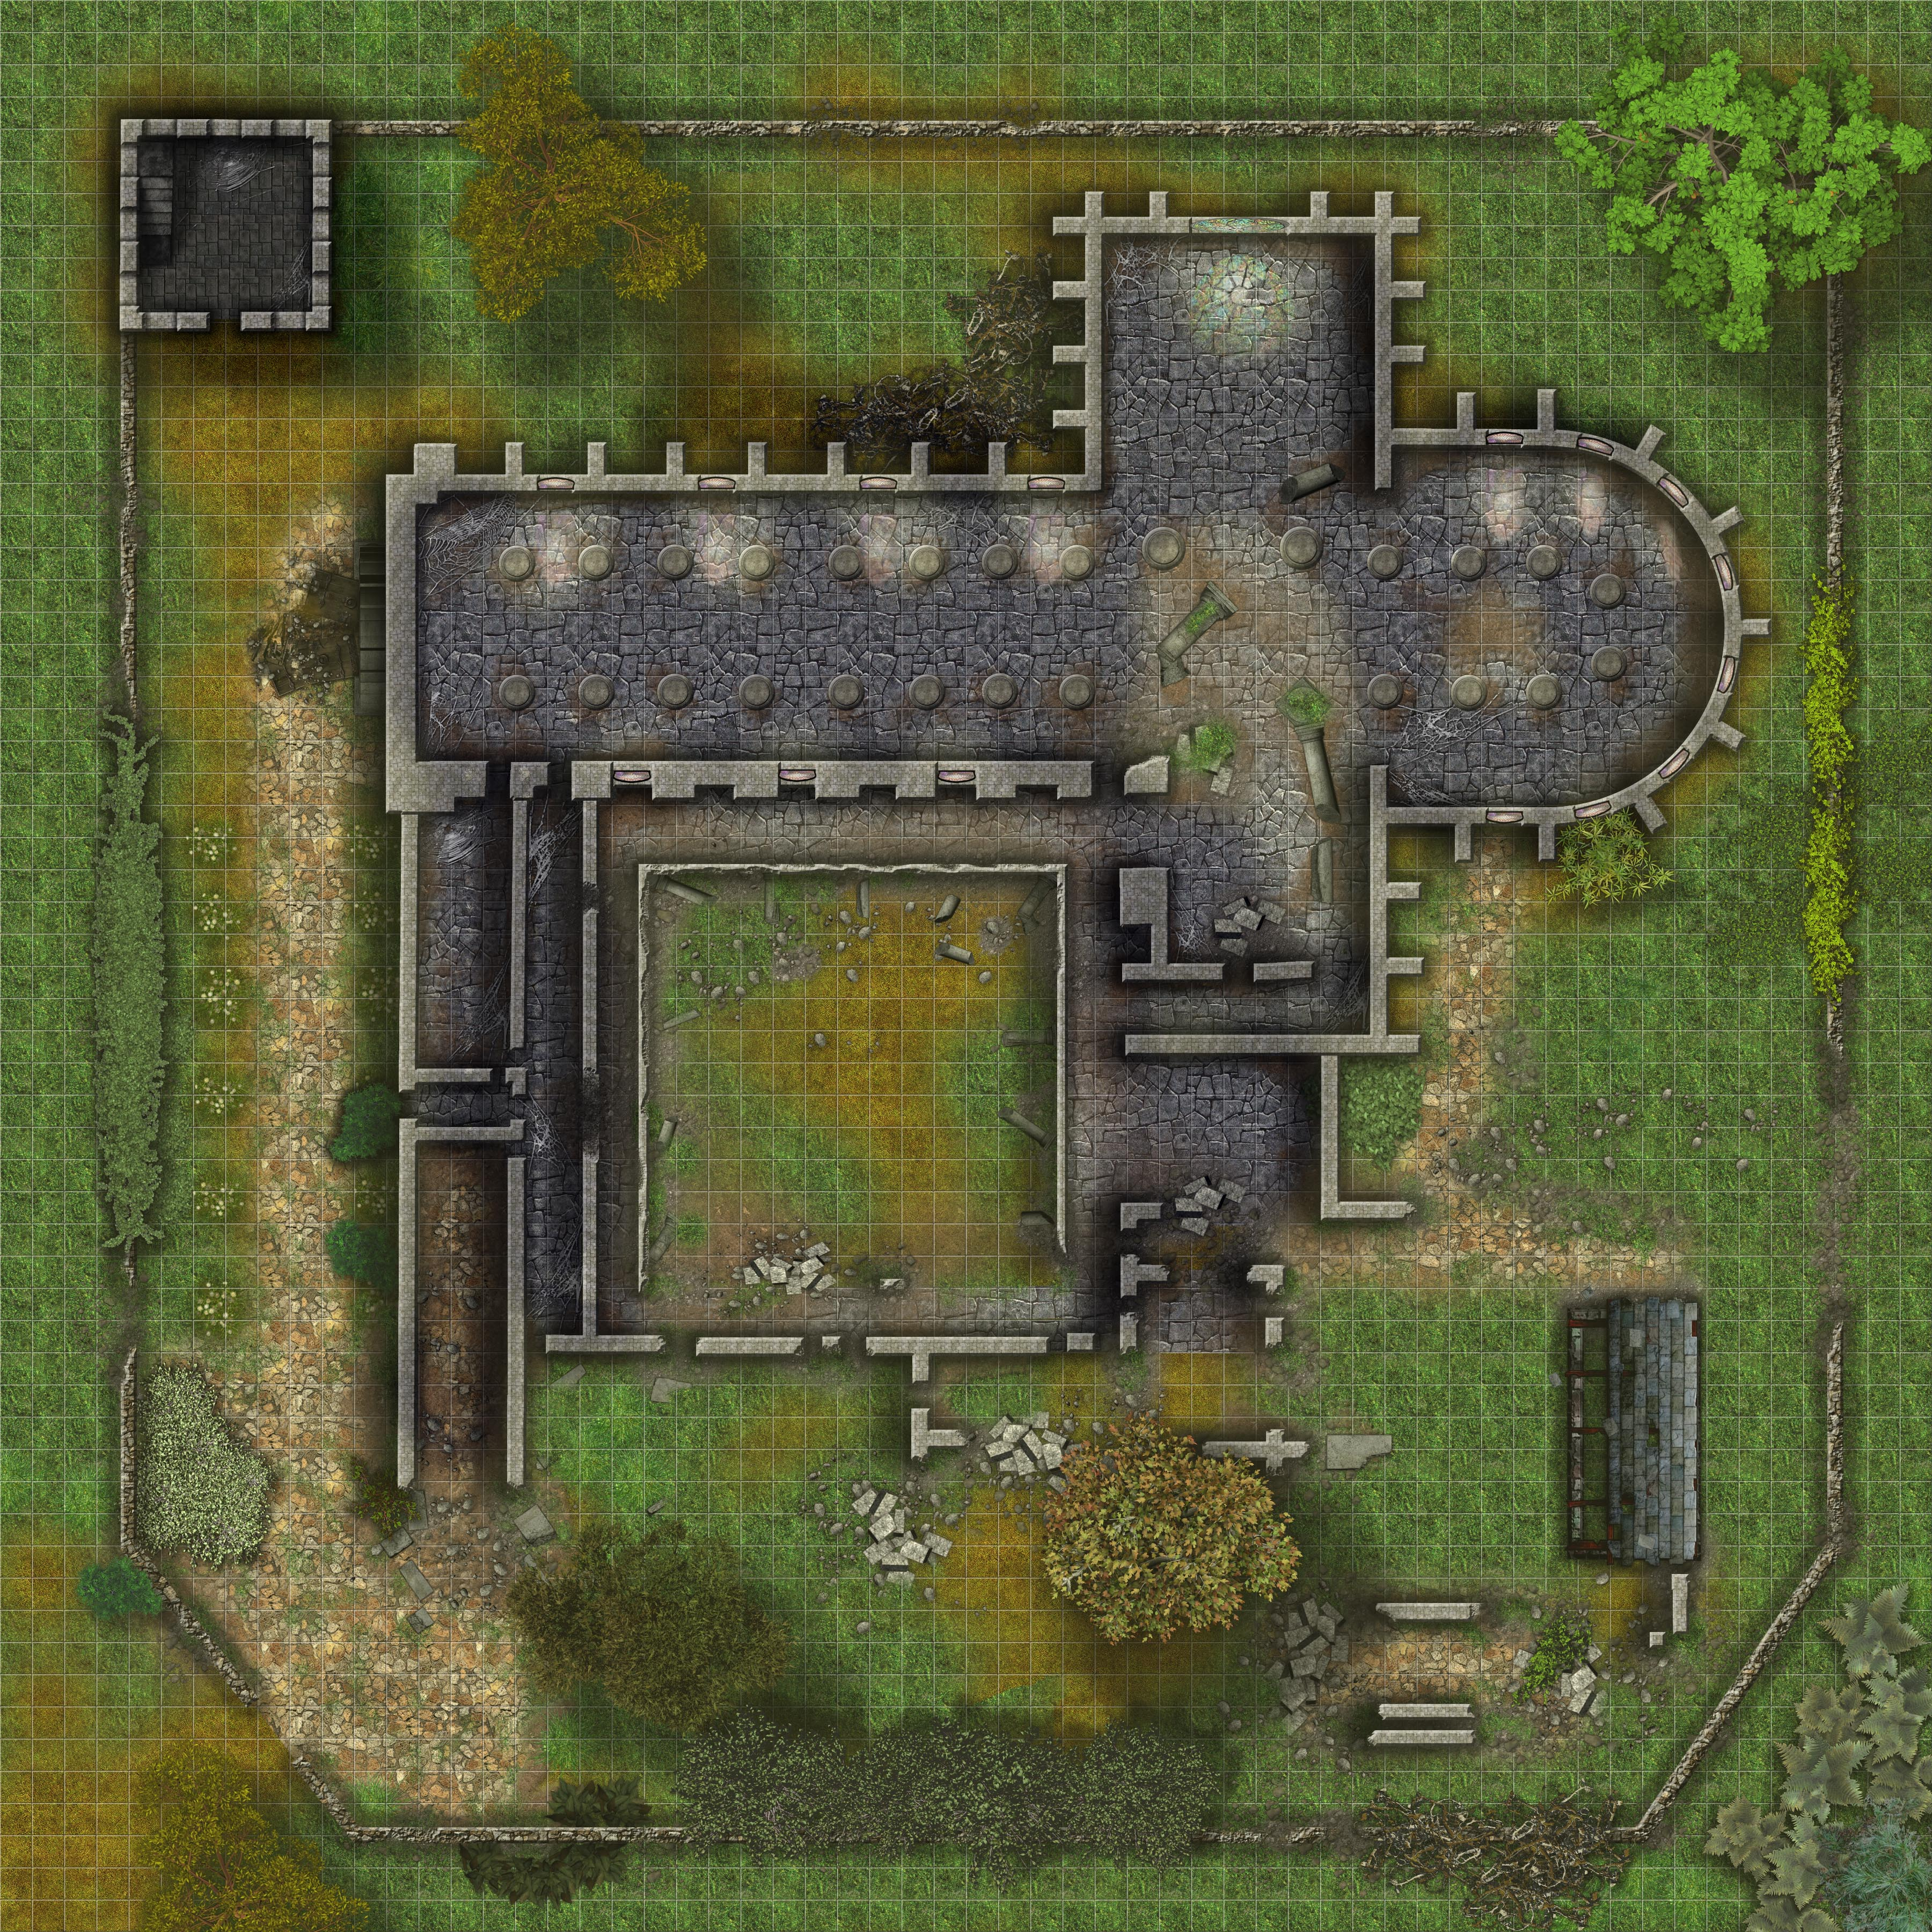 Dungeon Floor Plans Ruinned Abbey Without Roofs By Simonutp On Deviantart